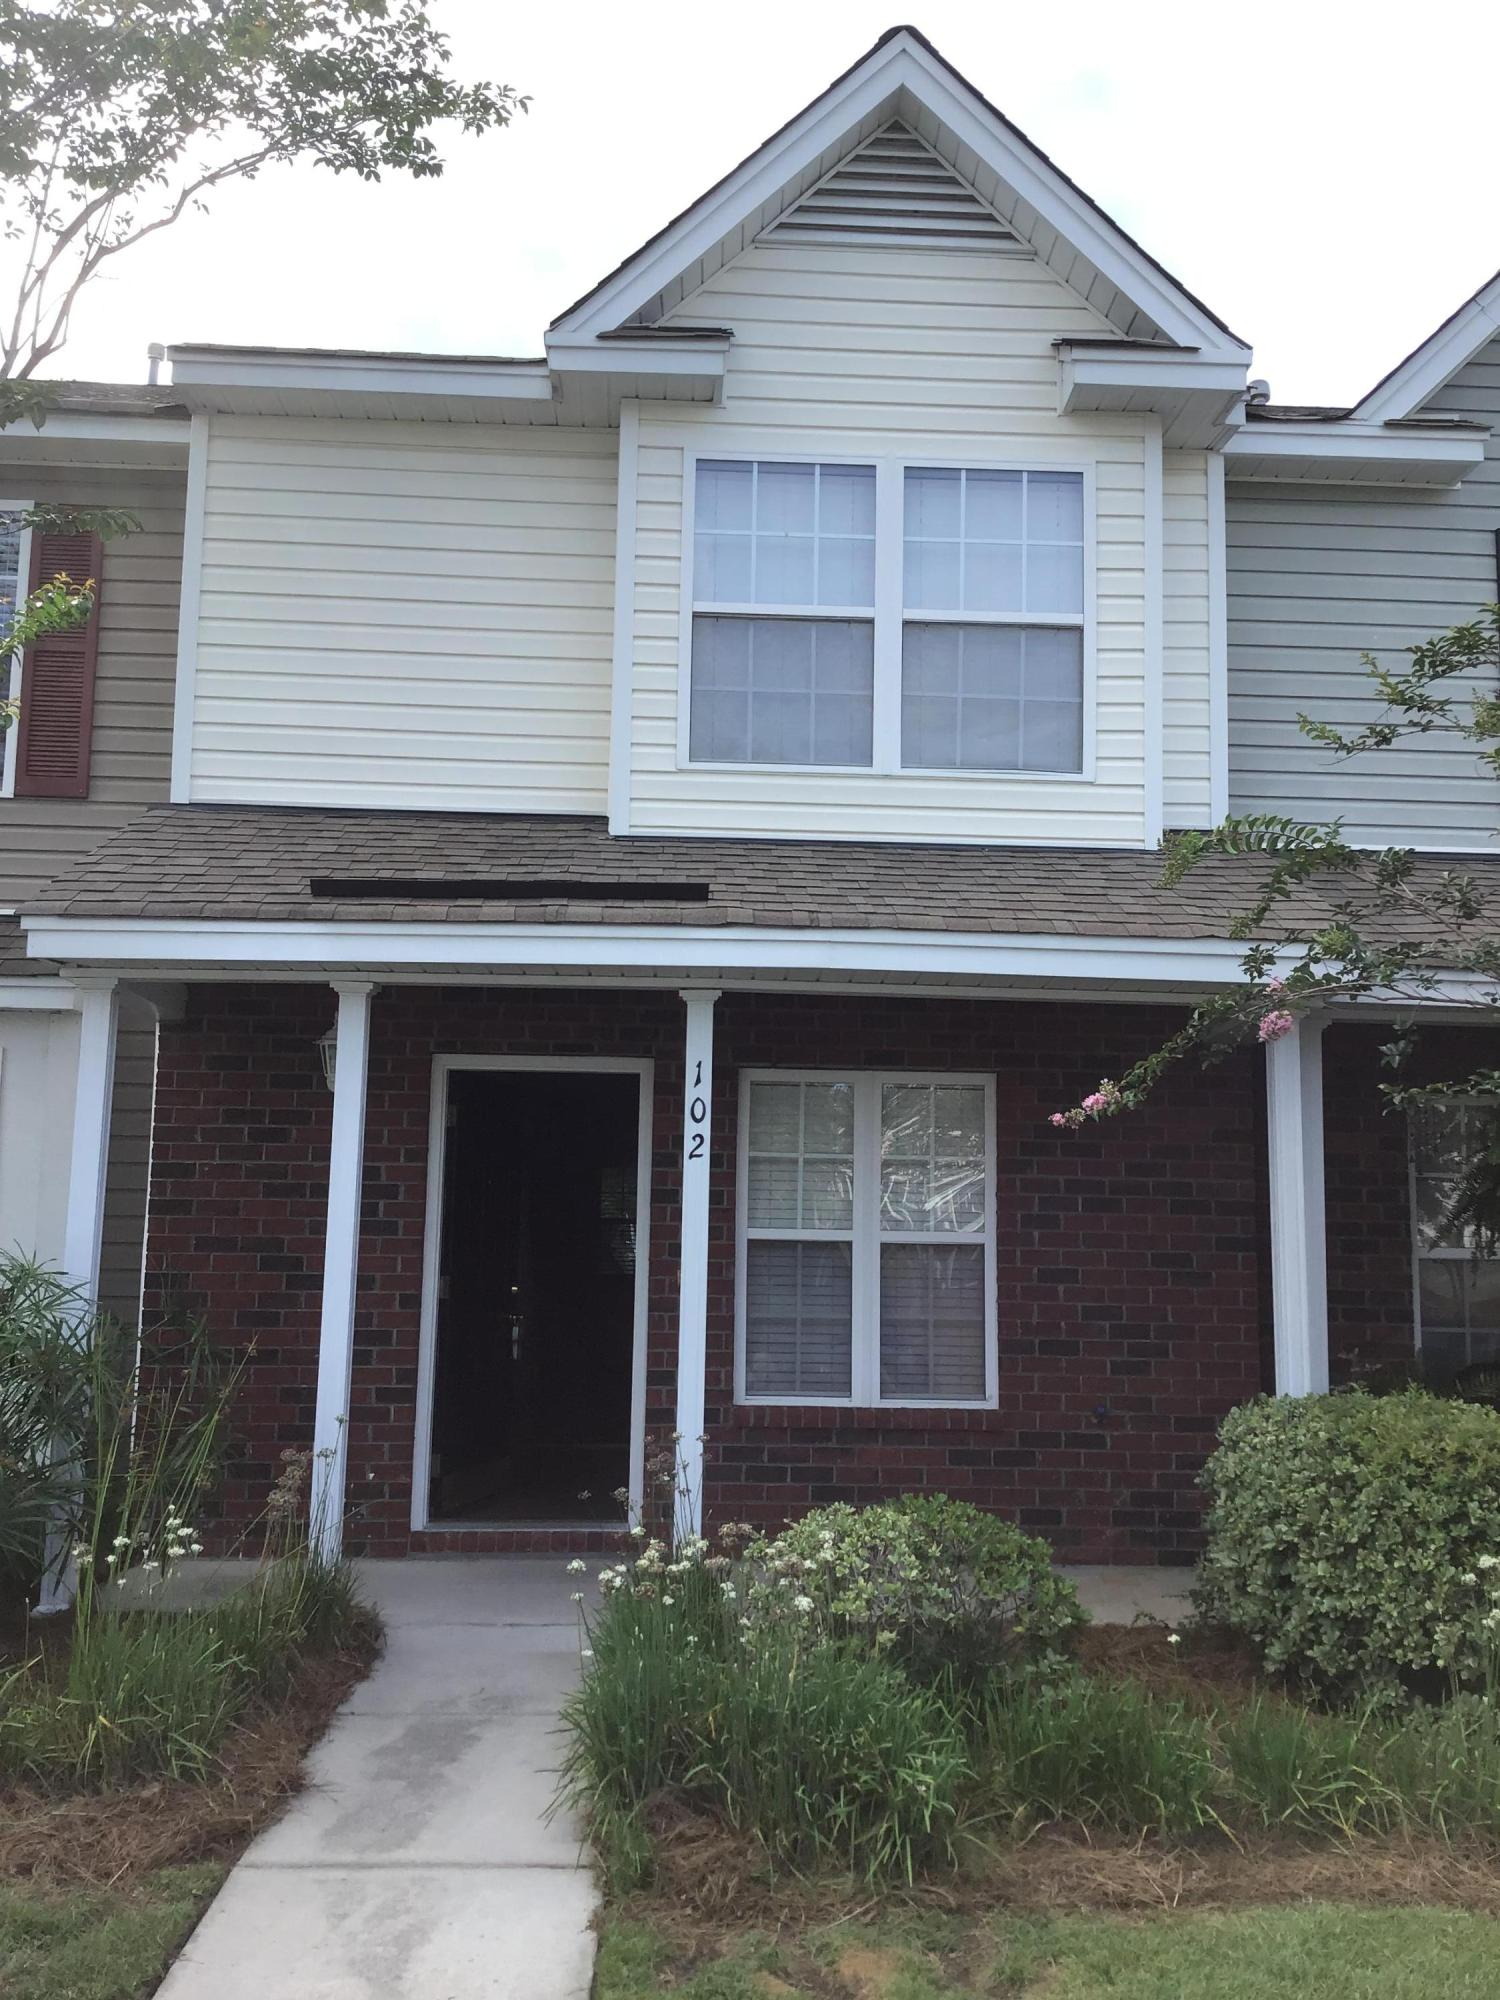 Persimmon Hill Townhouses Homes For Sale - 102 Darcy, Goose Creek, SC - 0